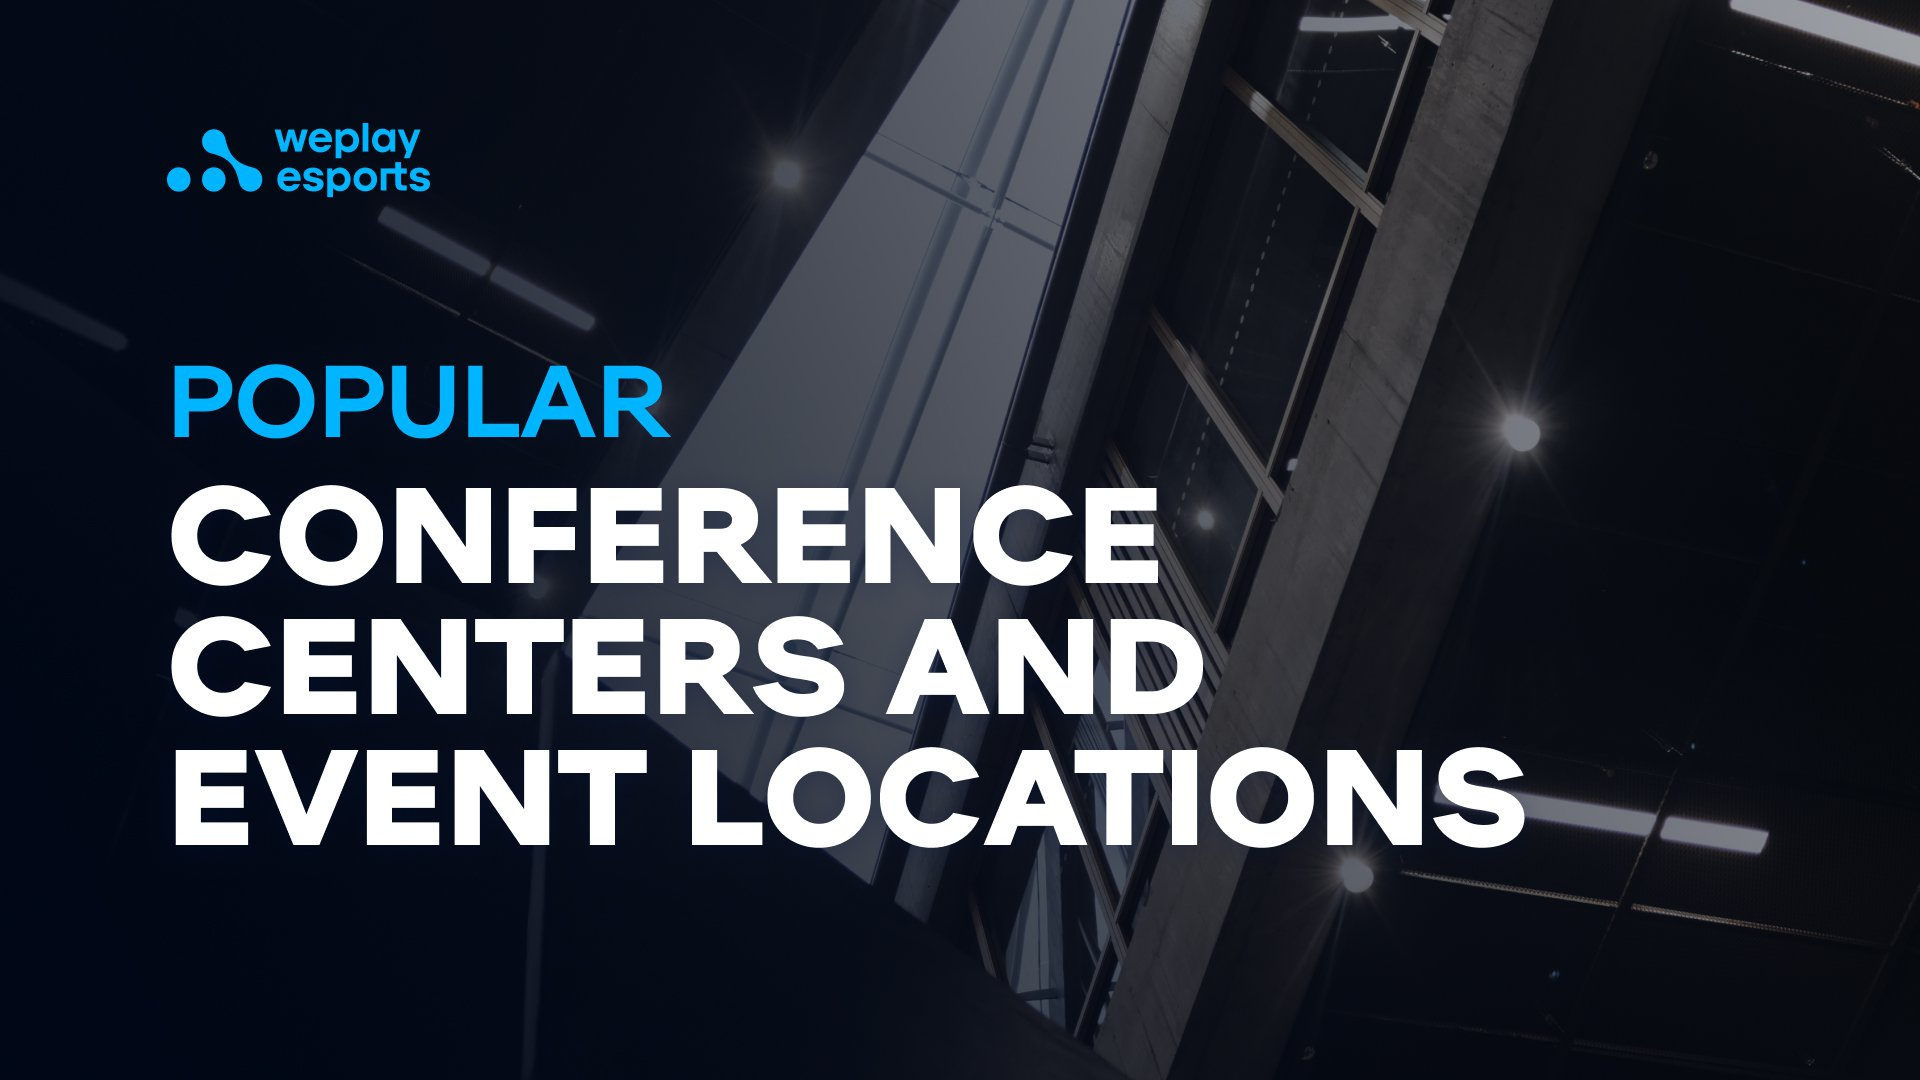 Popular Conference Centers and Event Locations